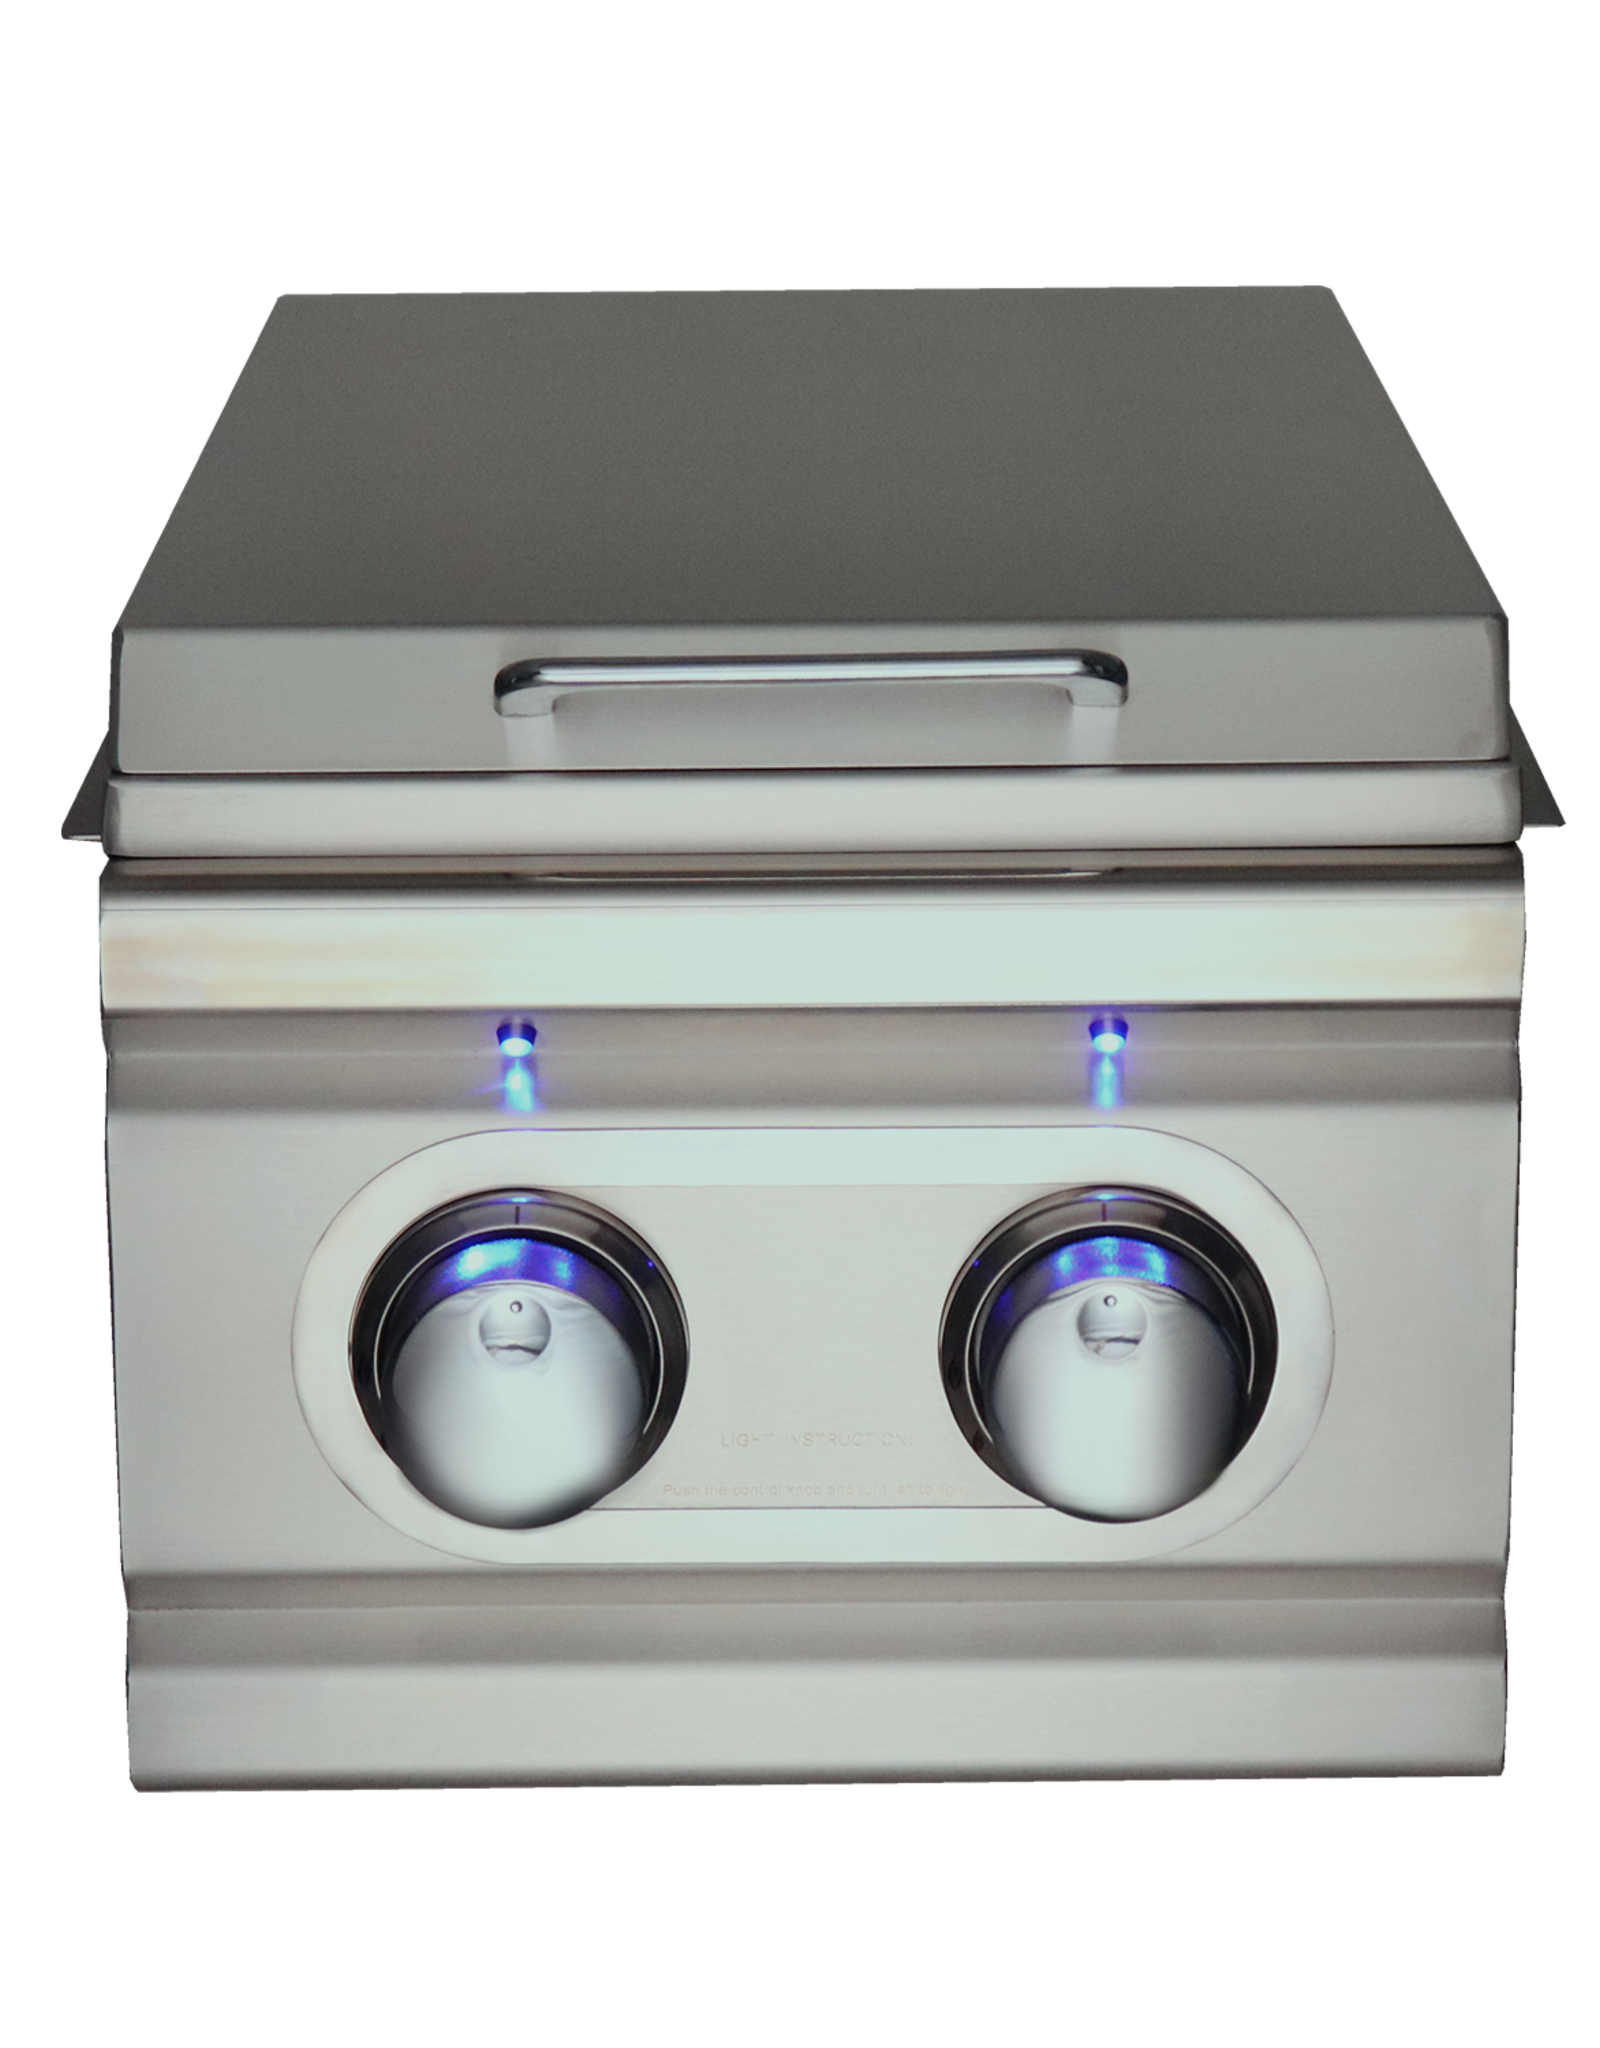 Renaissance Cooking Systems Renaissance Cooking Systems The Cutlass-Pro Series Double Side Burner with LED Lights - RDB1EL